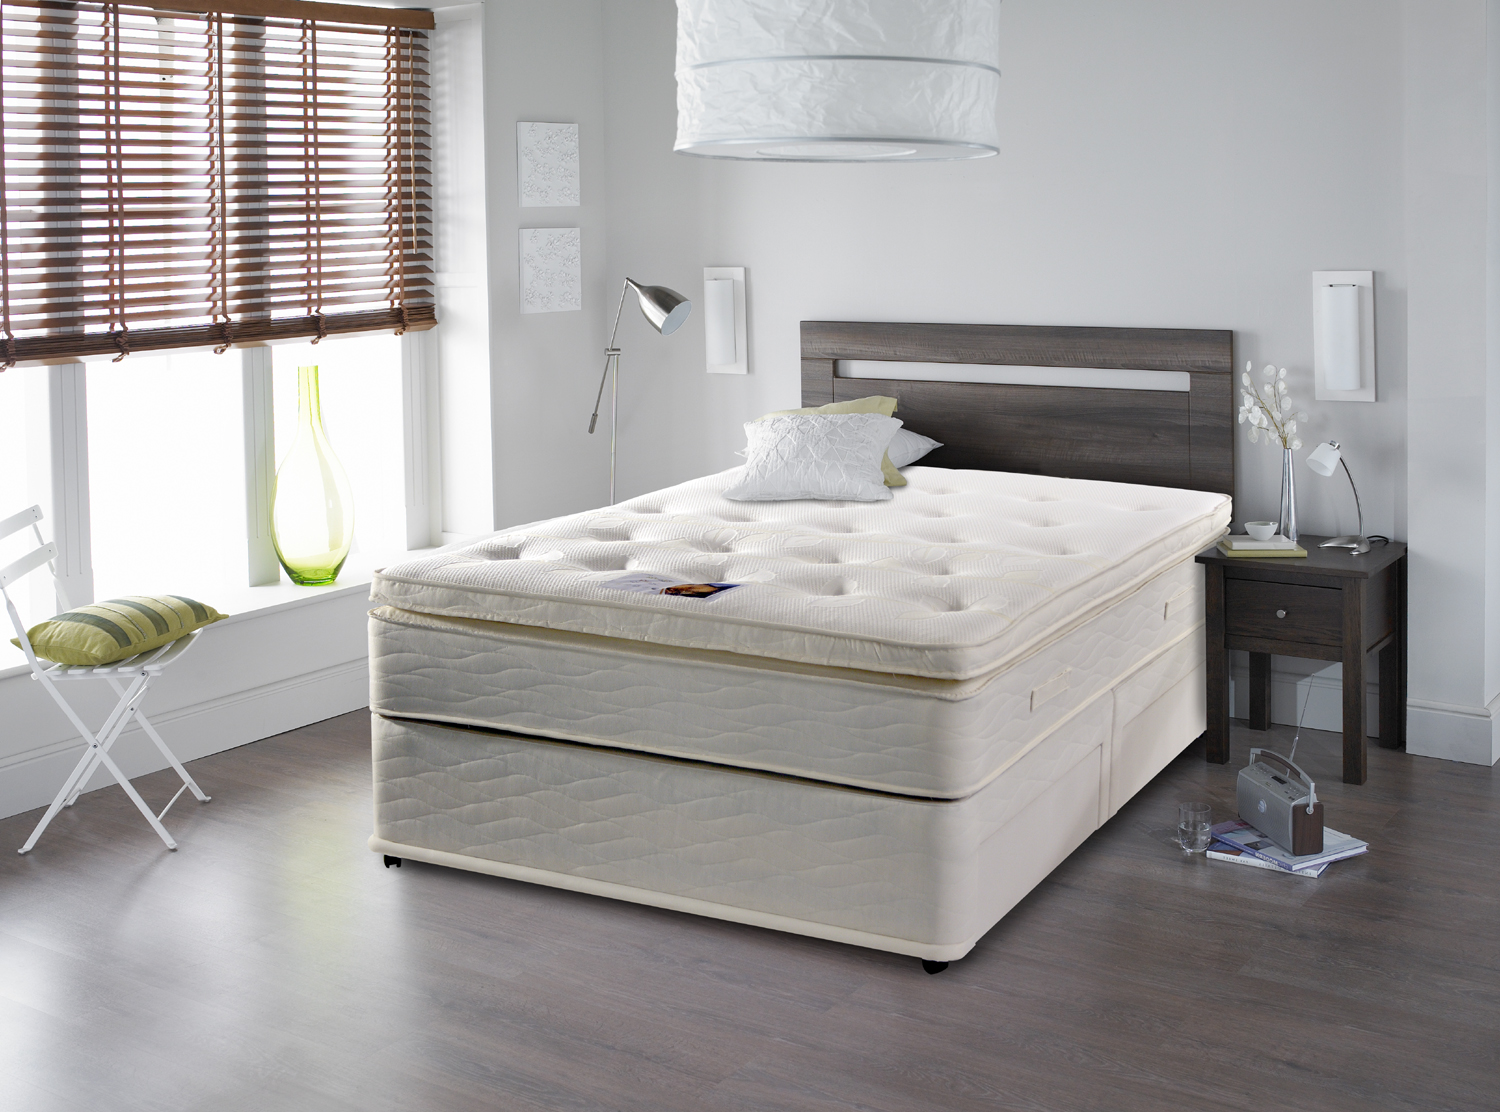 London Bedroom Furniture Bedroom Furniture Beds And Furnishings Bedroom Suites Chairs London